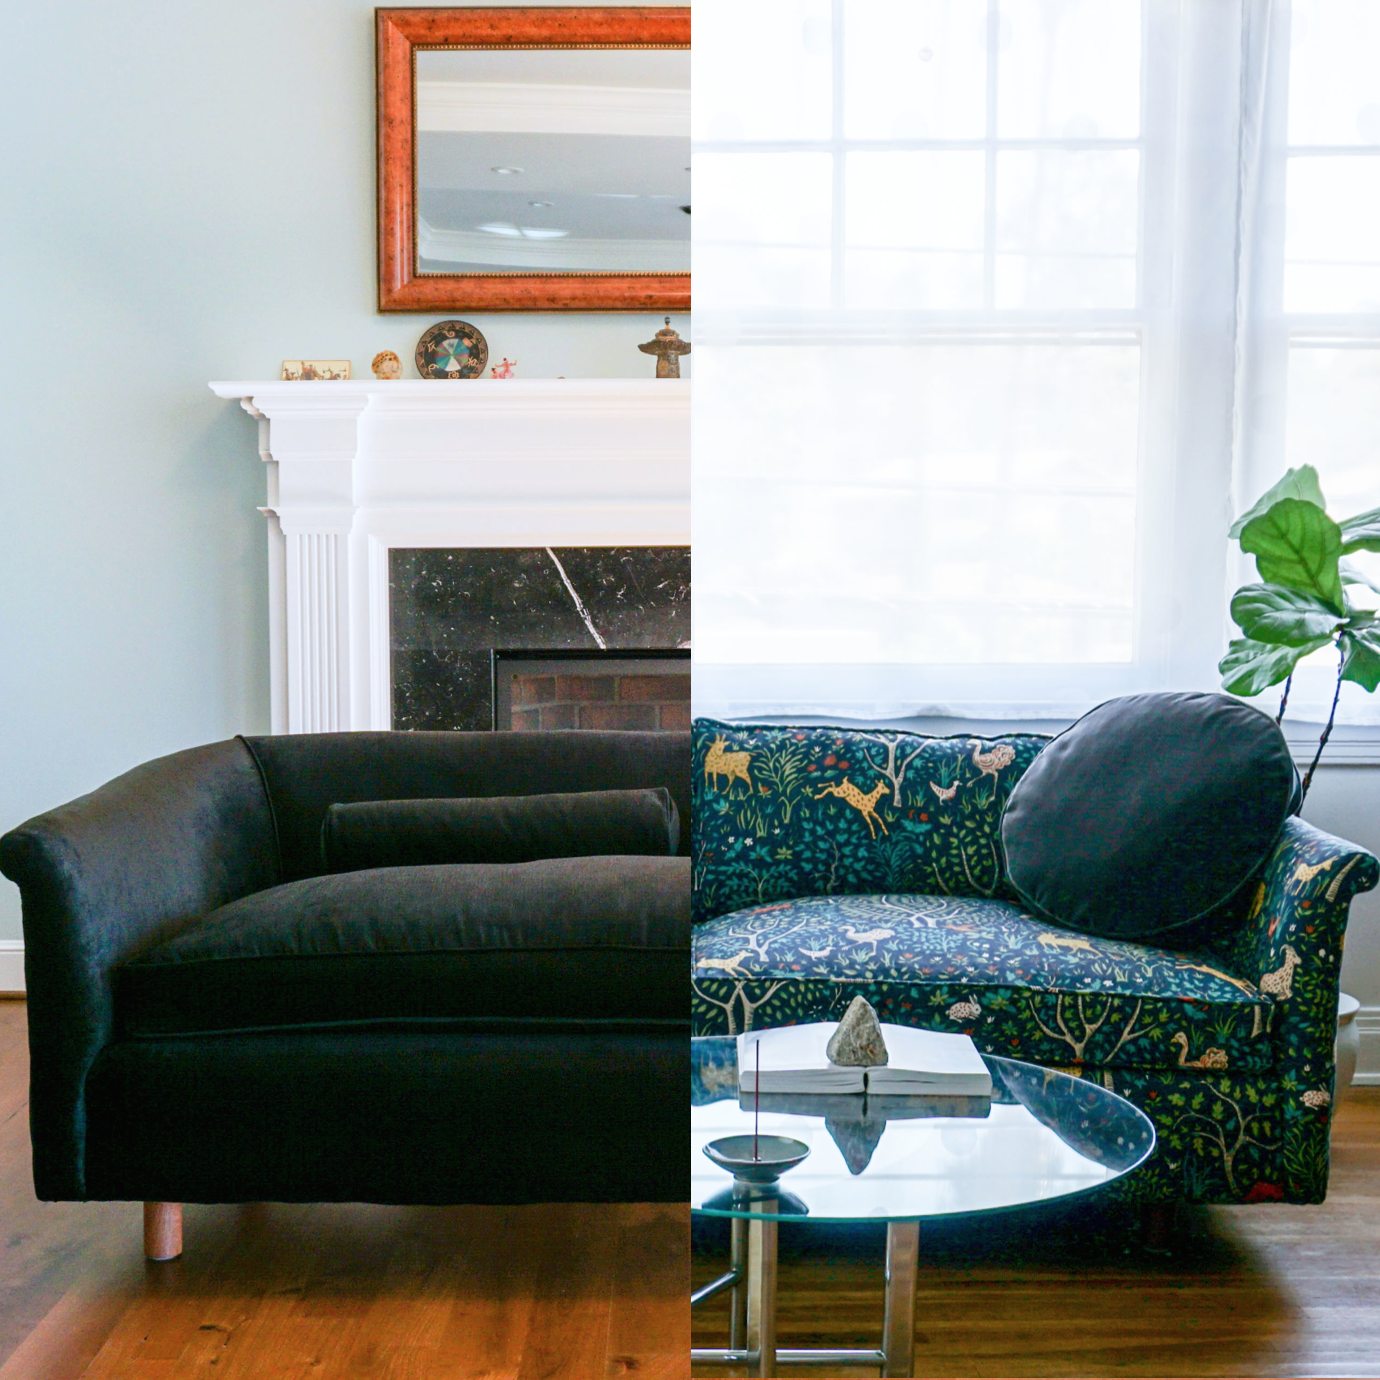 The Cost of Green Upholstery - Click here to find out how to quantify the value of Green Upholstery.